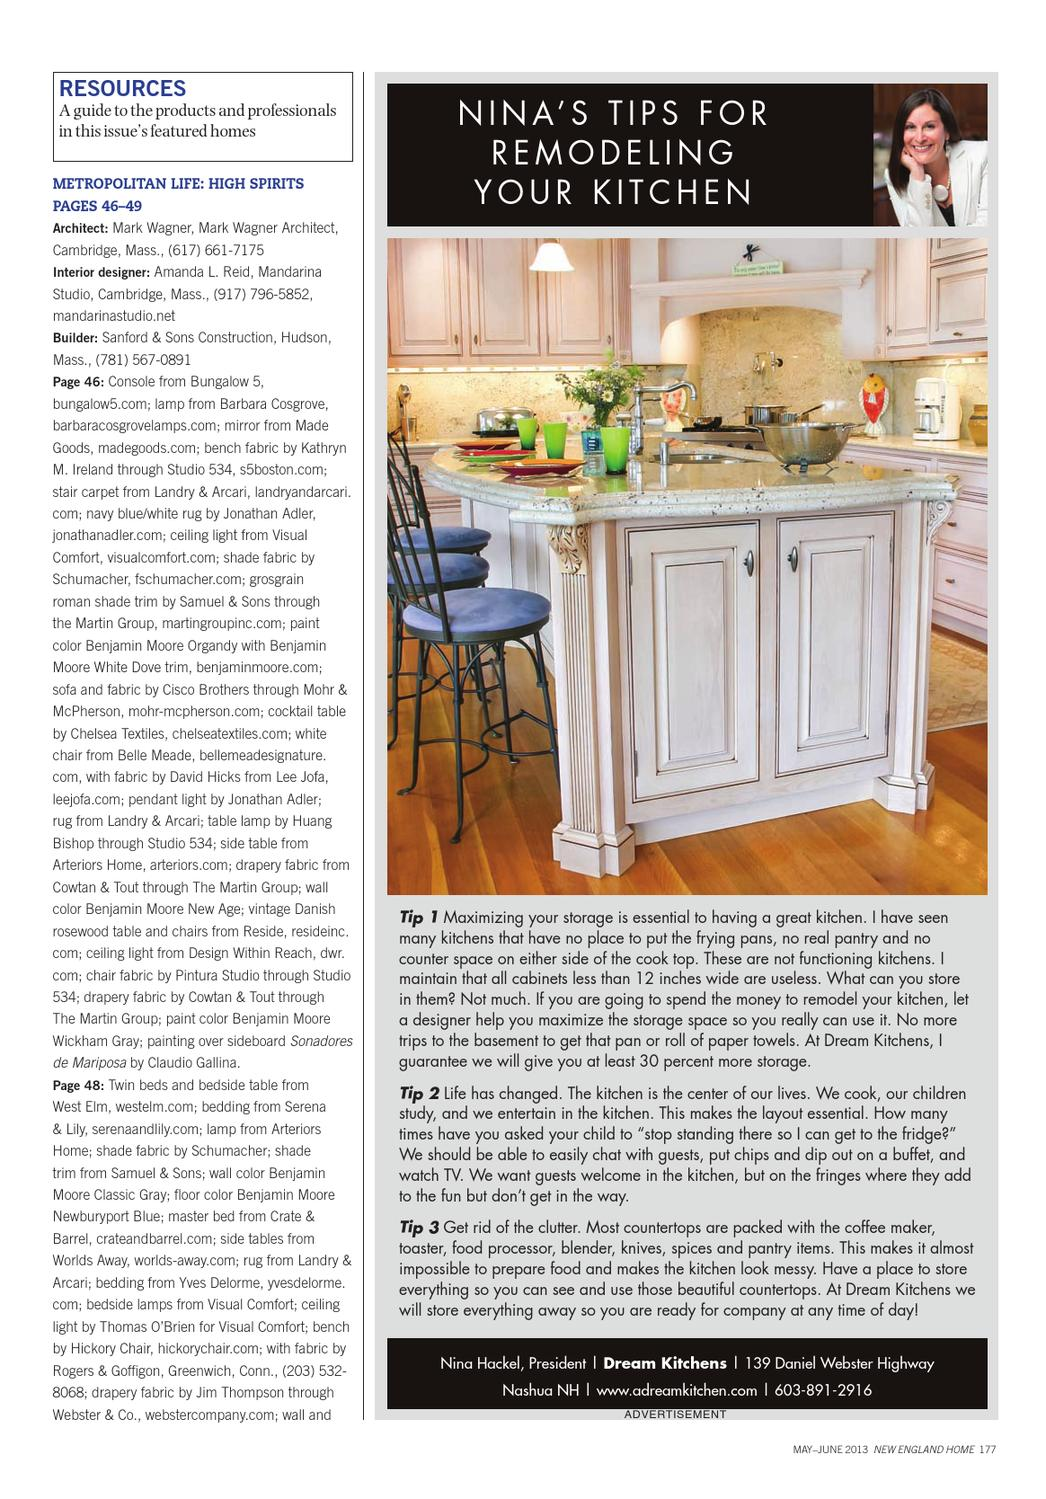 New England Home May June 2013 by Network Communications Inc. - issuu